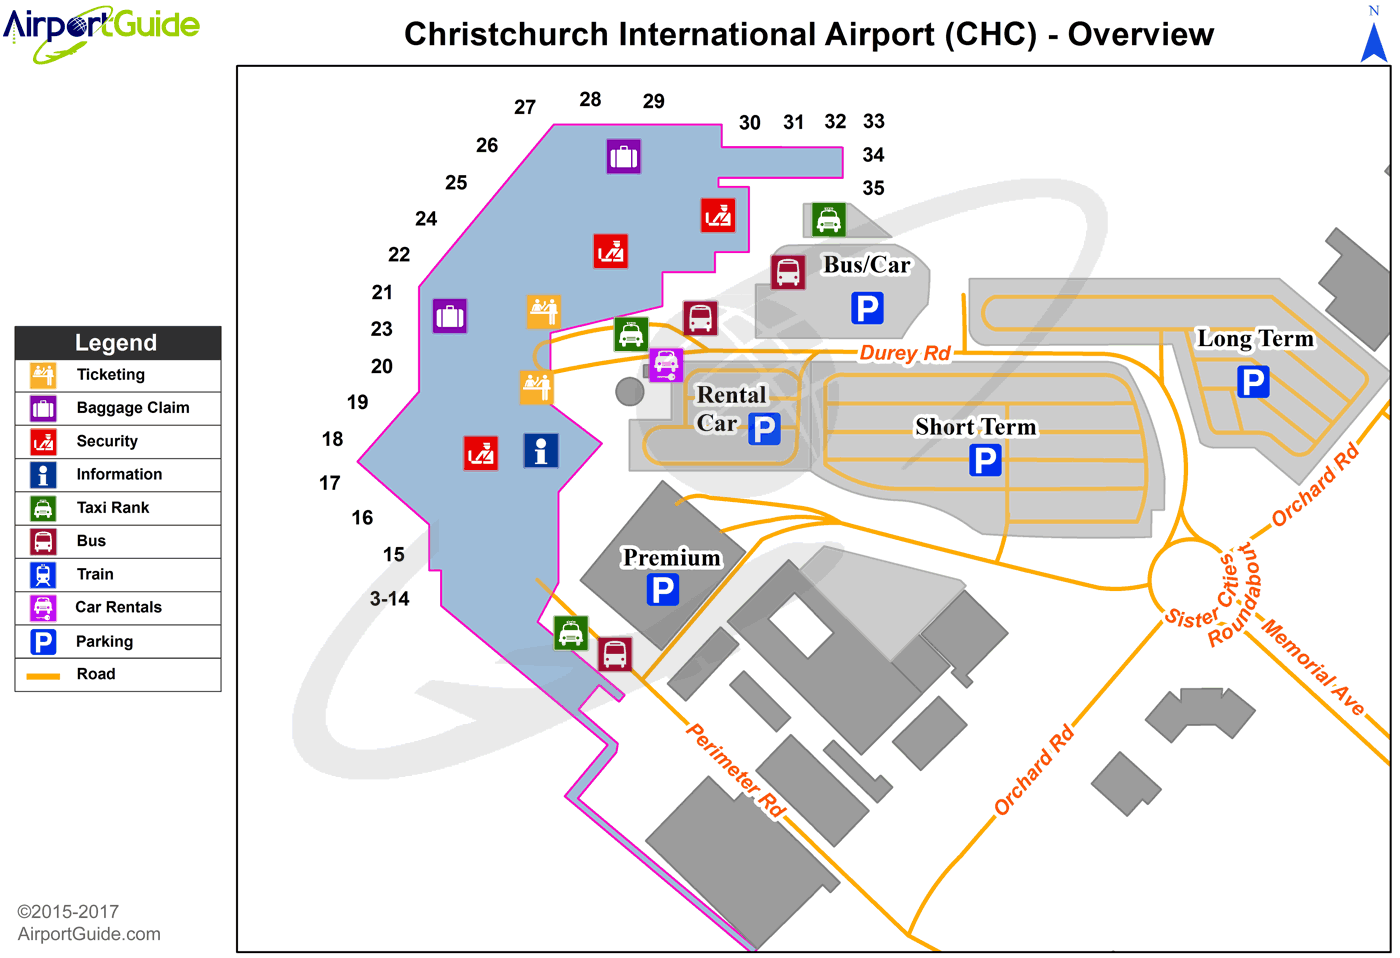 Christchurch - Christchurch International (CHC) Airport Terminal Map - Overview